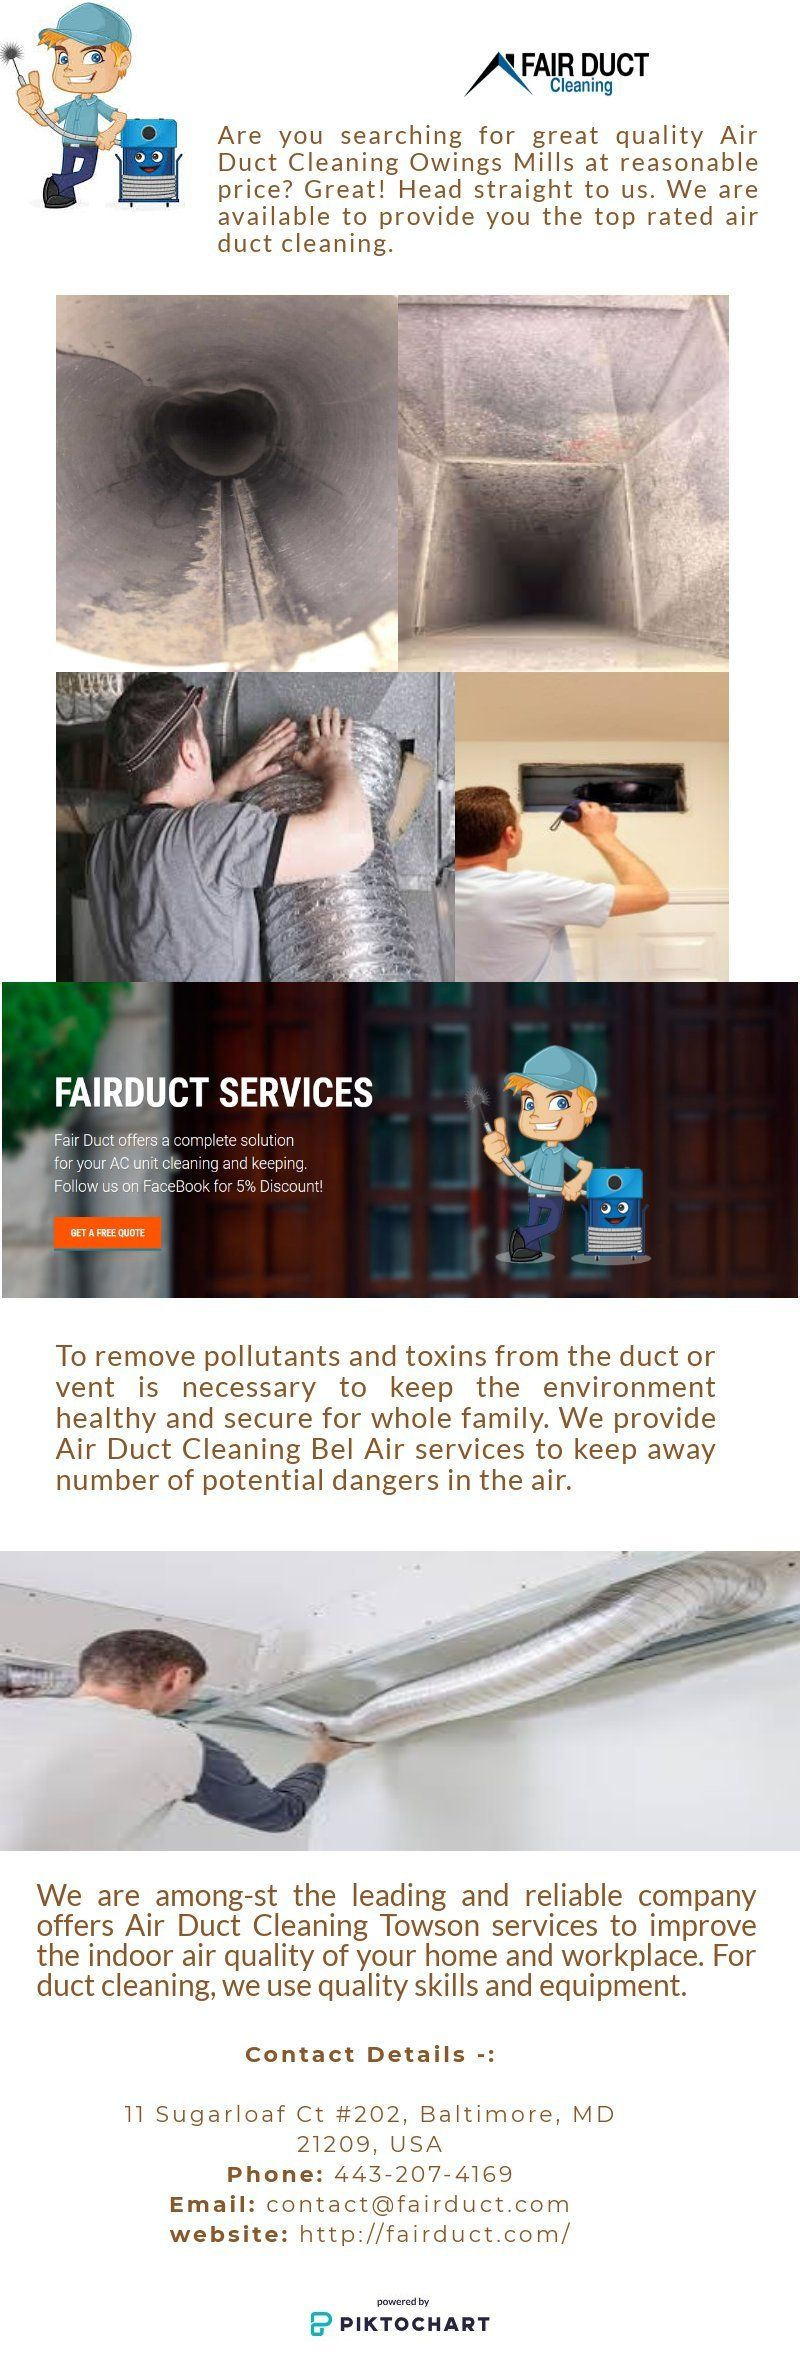 Fair Duct provides Air Duct Cleaning Services Silver